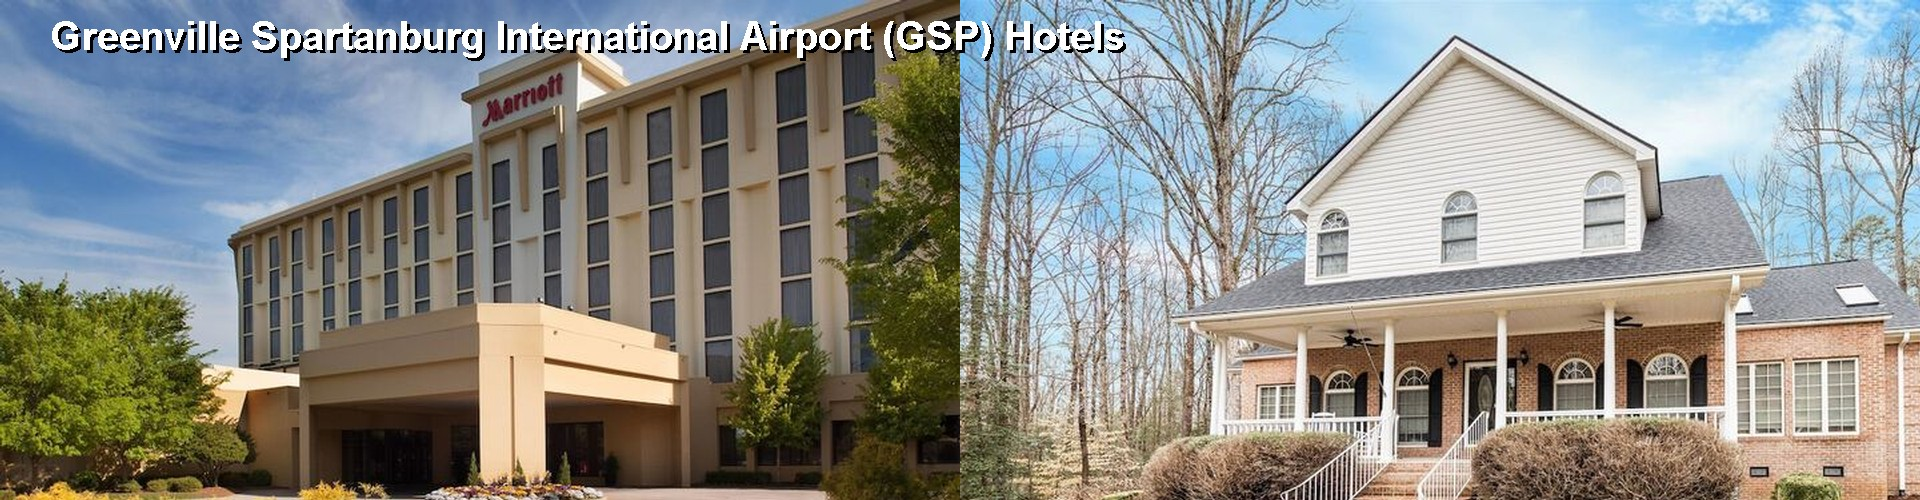 5 Best Hotels near Greenville Spartanburg International Airport (GSP)